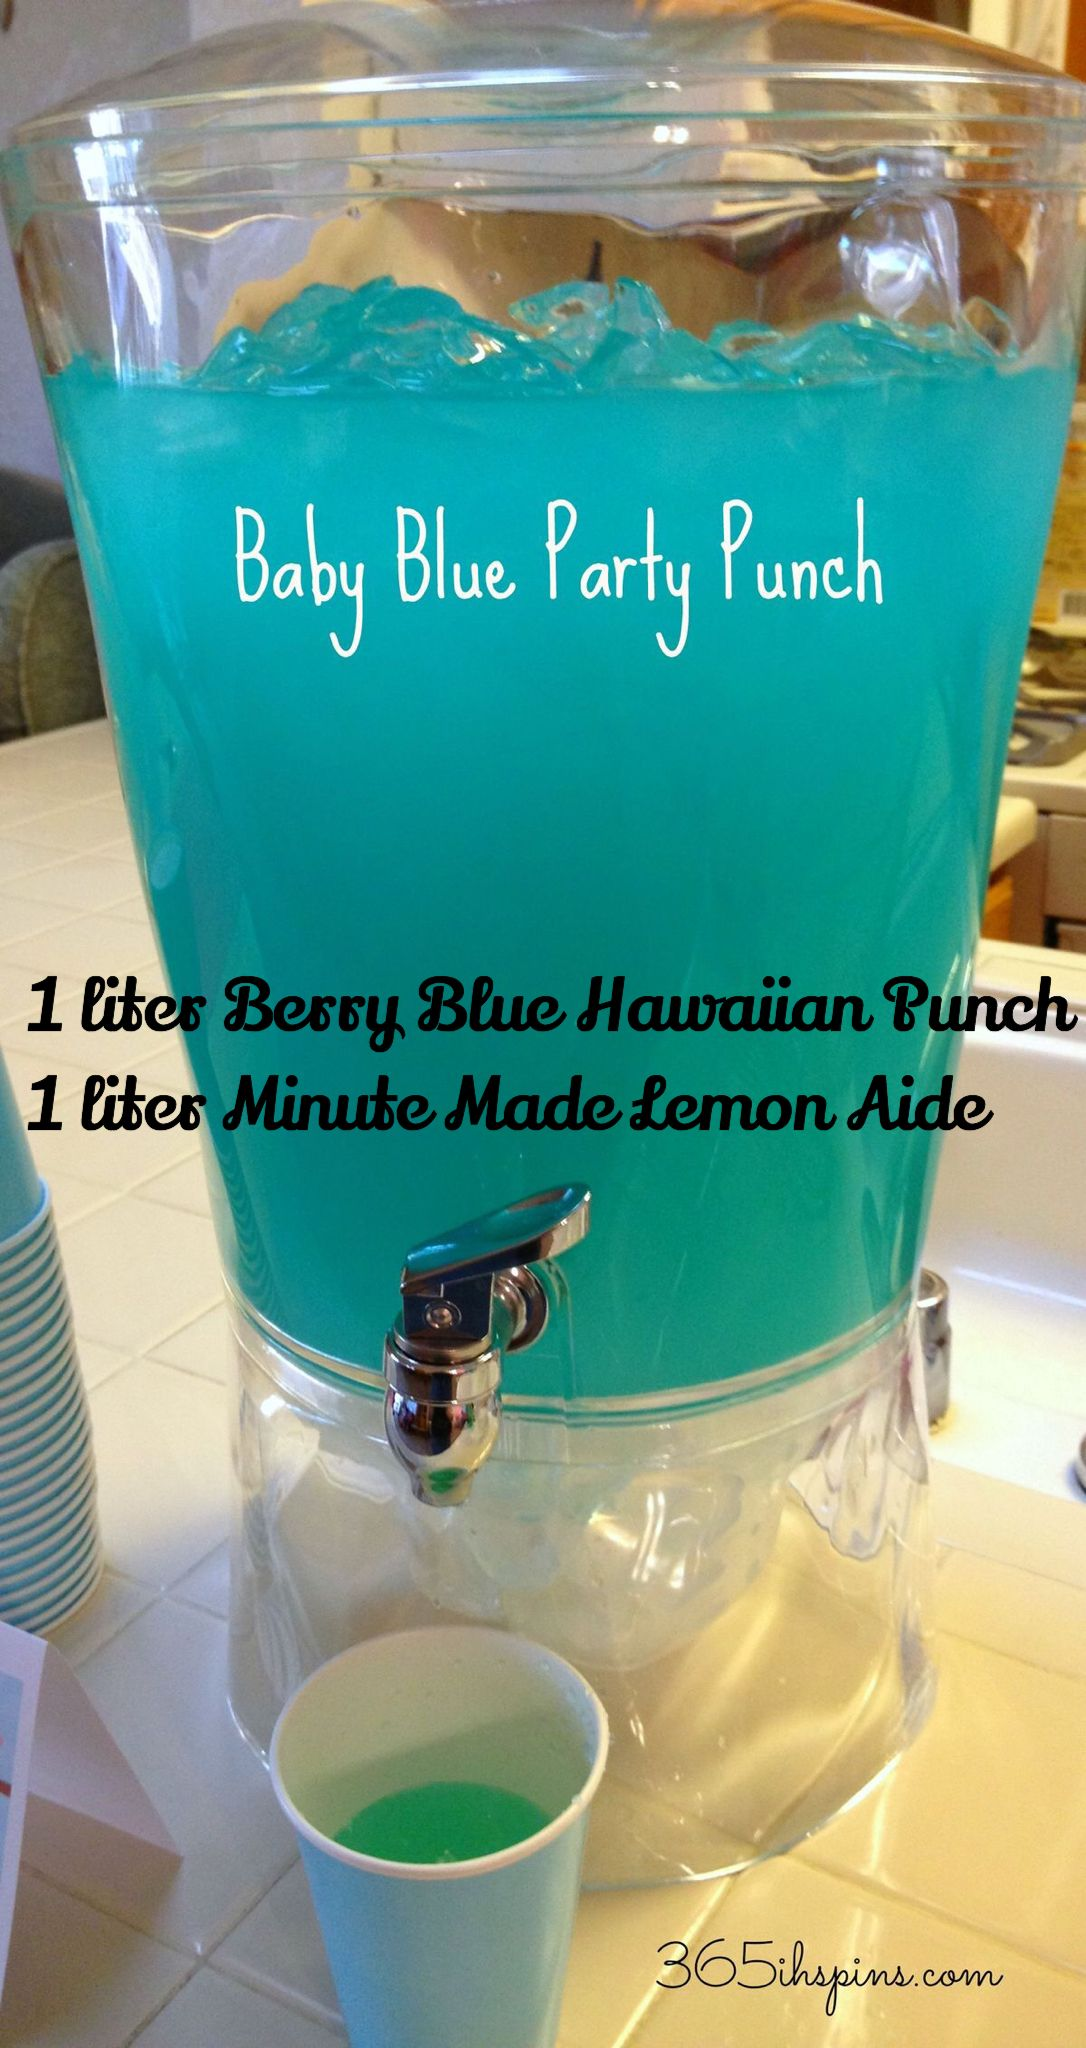 Pin by Kathy Daniels on Baby shower | Pinterest | Babies, Gender ...